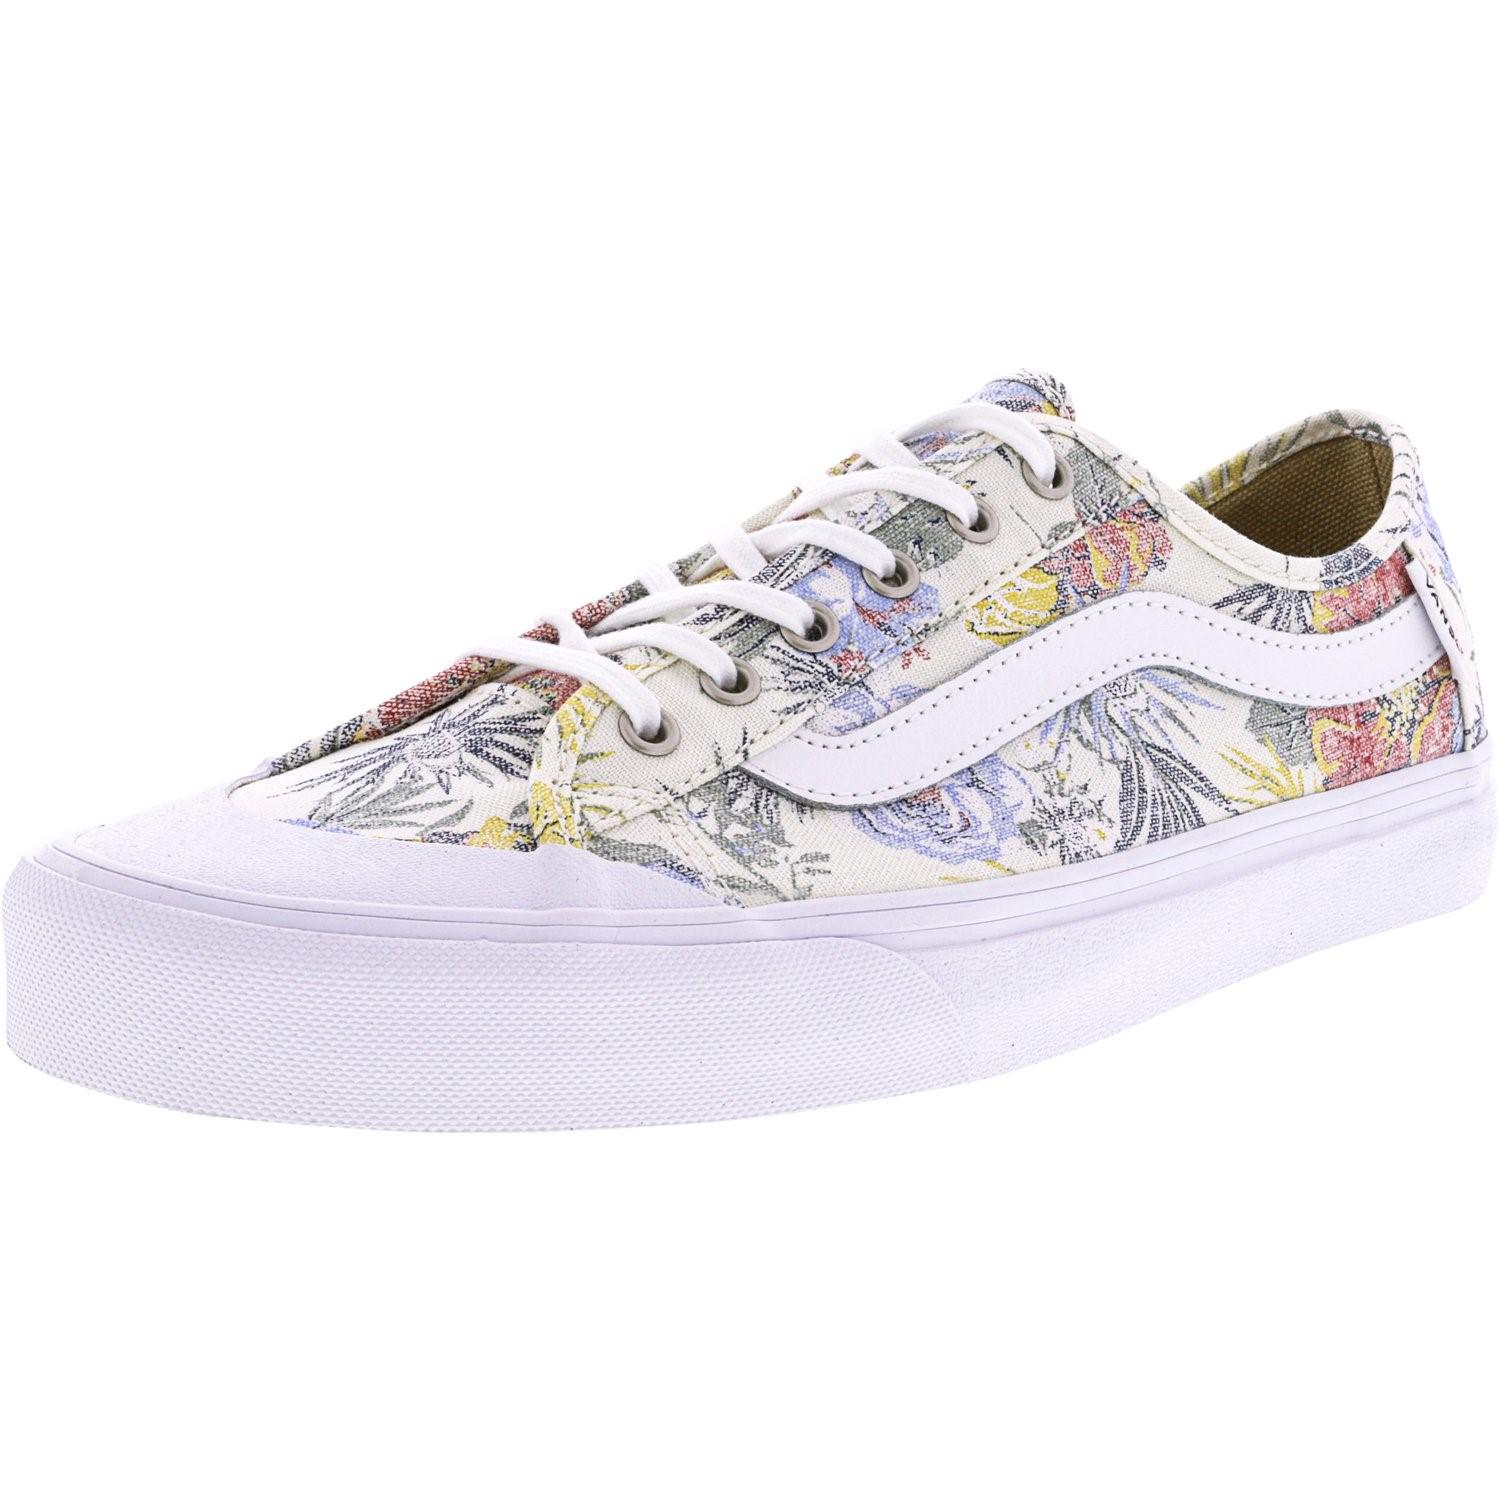 Lyst - Vans Black Ball Sf Desert Floral Ankle-high Canvas ... 8ccddd142